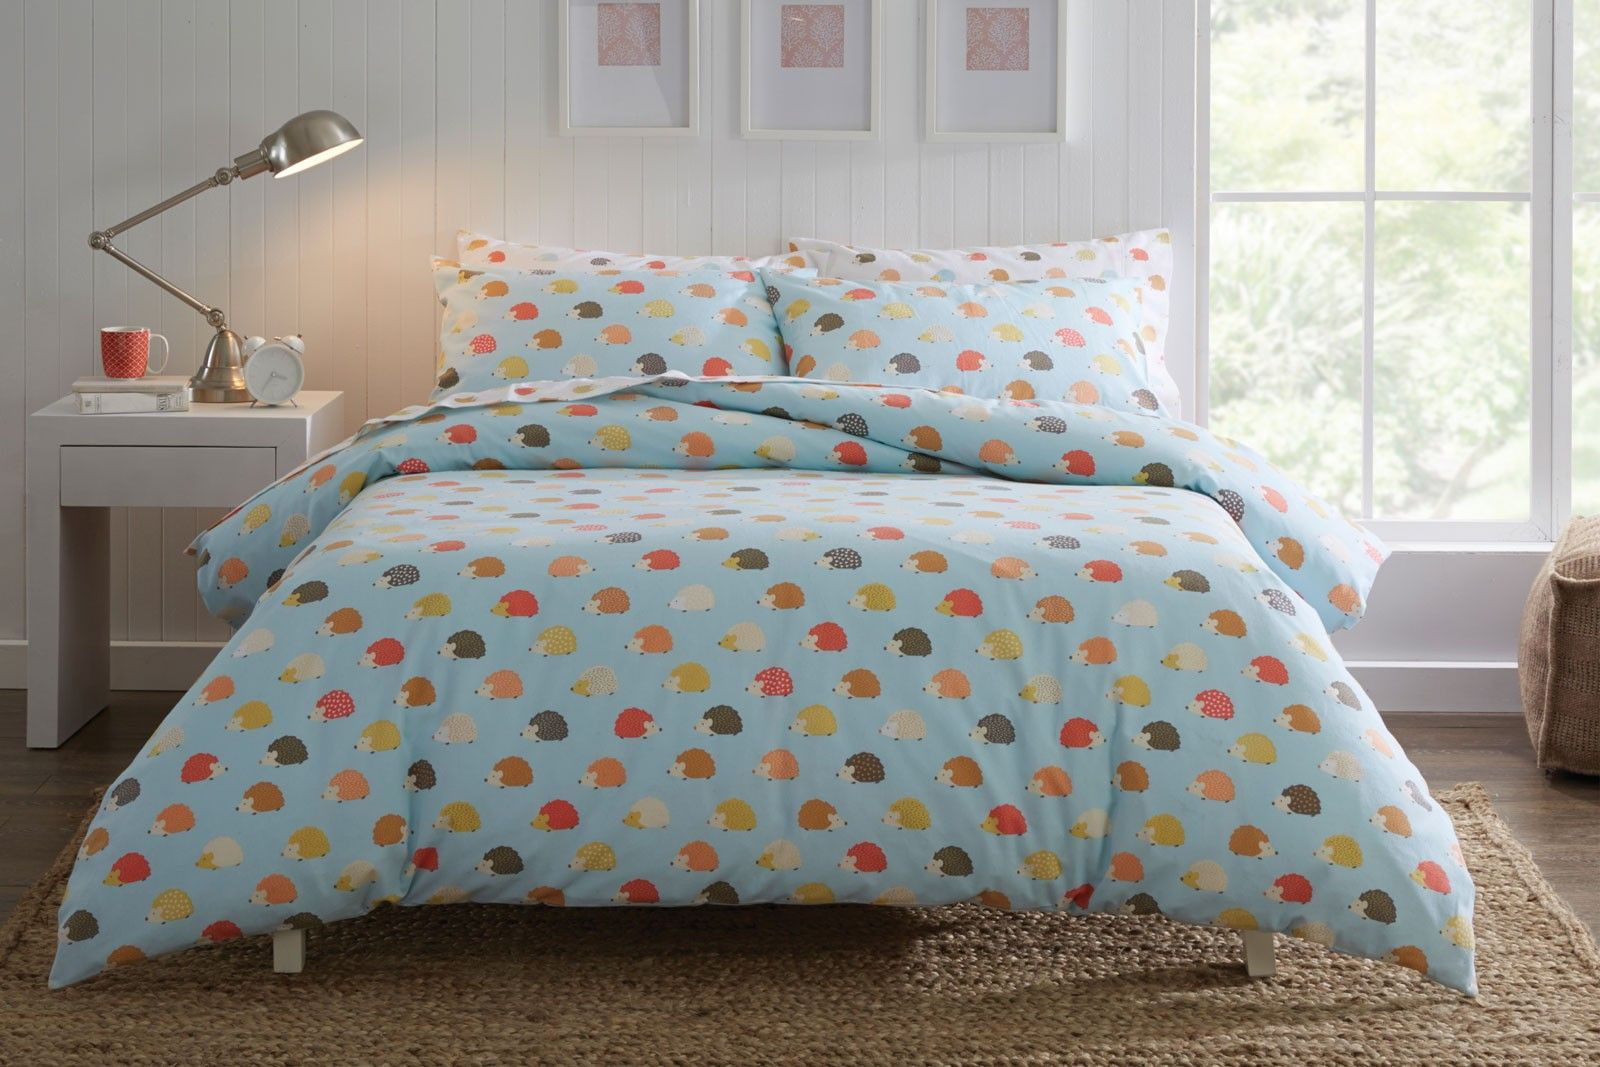 Morgan & Finch hedgehog quilt cover from Bed Bath and Table | BM ...